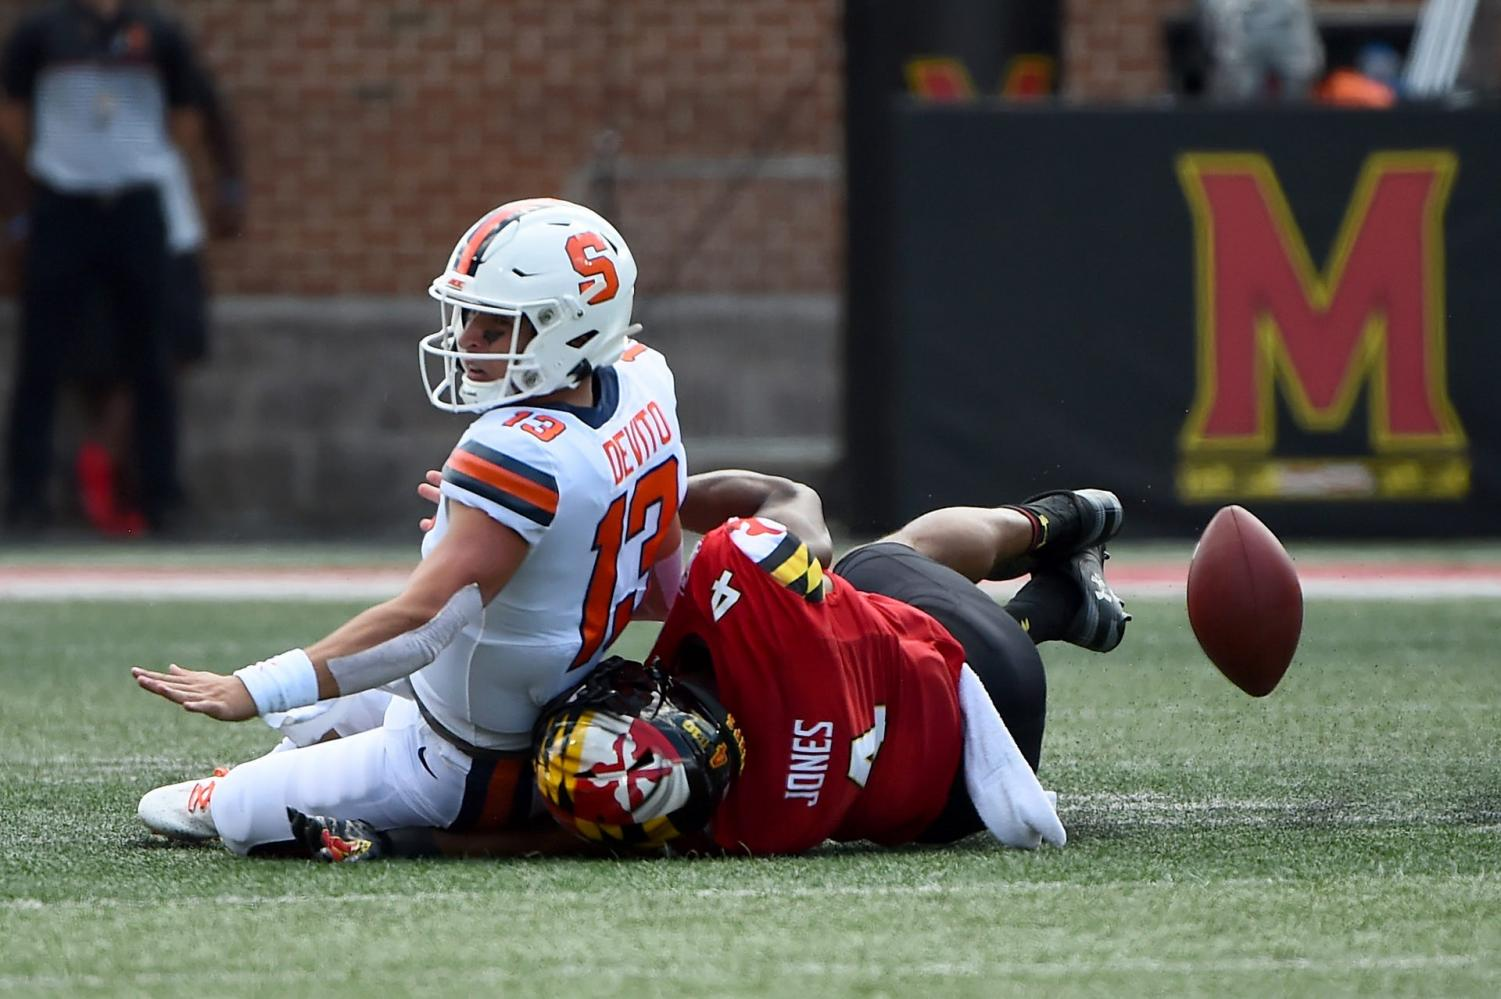 Maryland Terrapins linebacker Keandre Jones (4) forces Syracuse Orange quarterback Tommy DeVito (13) to fumble during the first half of an NCAA college football game, Saturday, Sept. 7, 2019, in College Park, Md. (AP Photo/Will Newton) Associated Press